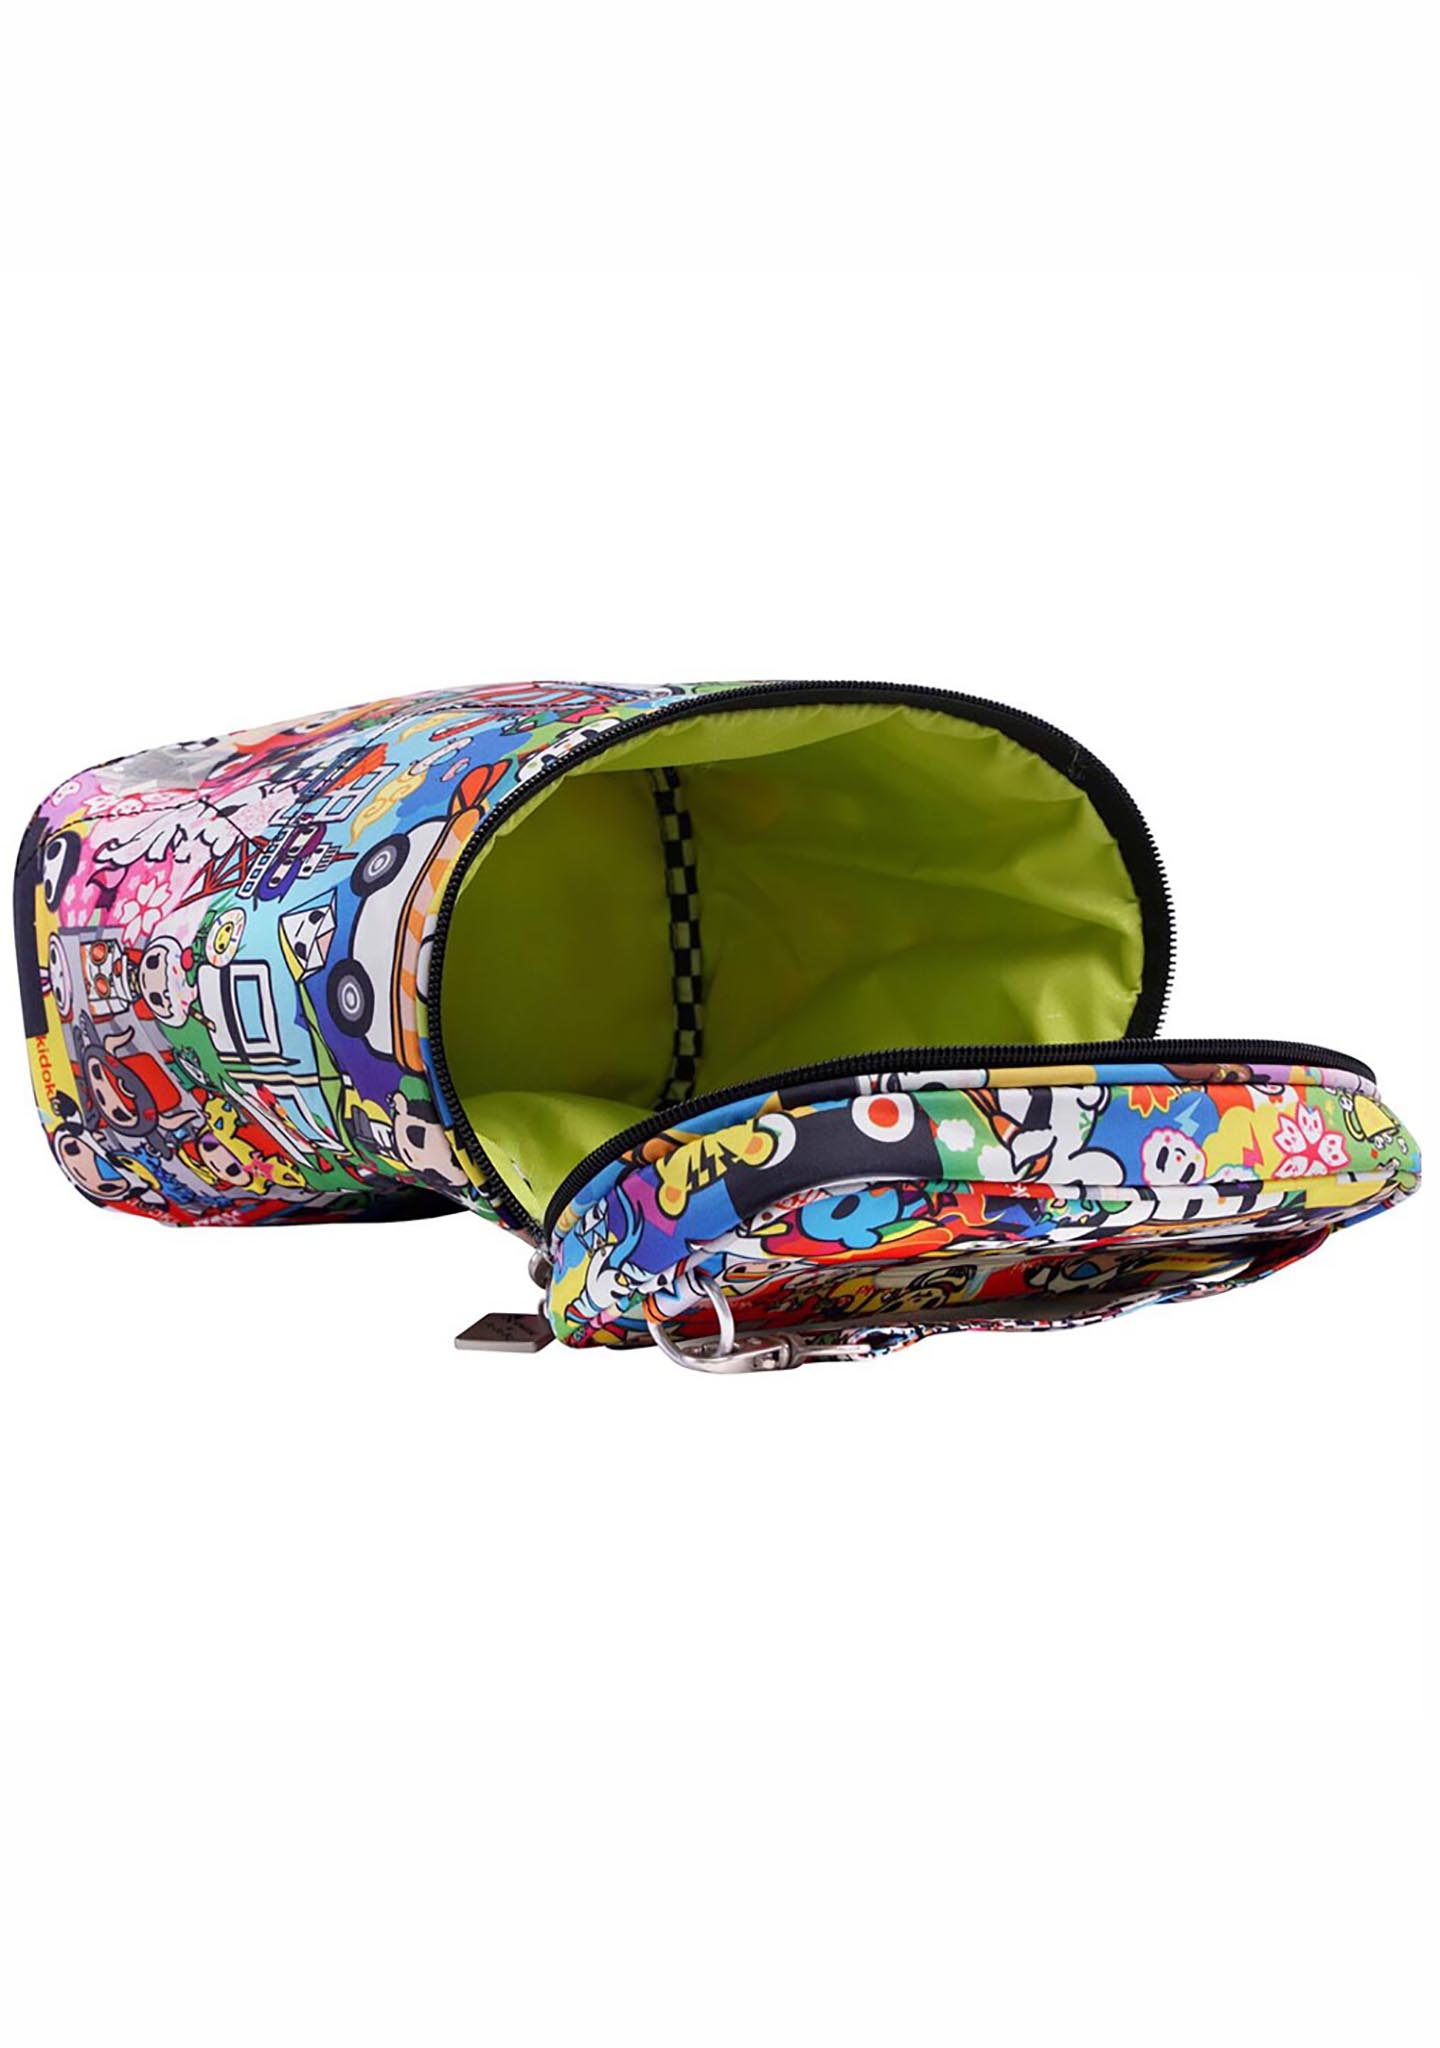 X Tokidoki Sushi Cars Fuel Cell Lunch Bag